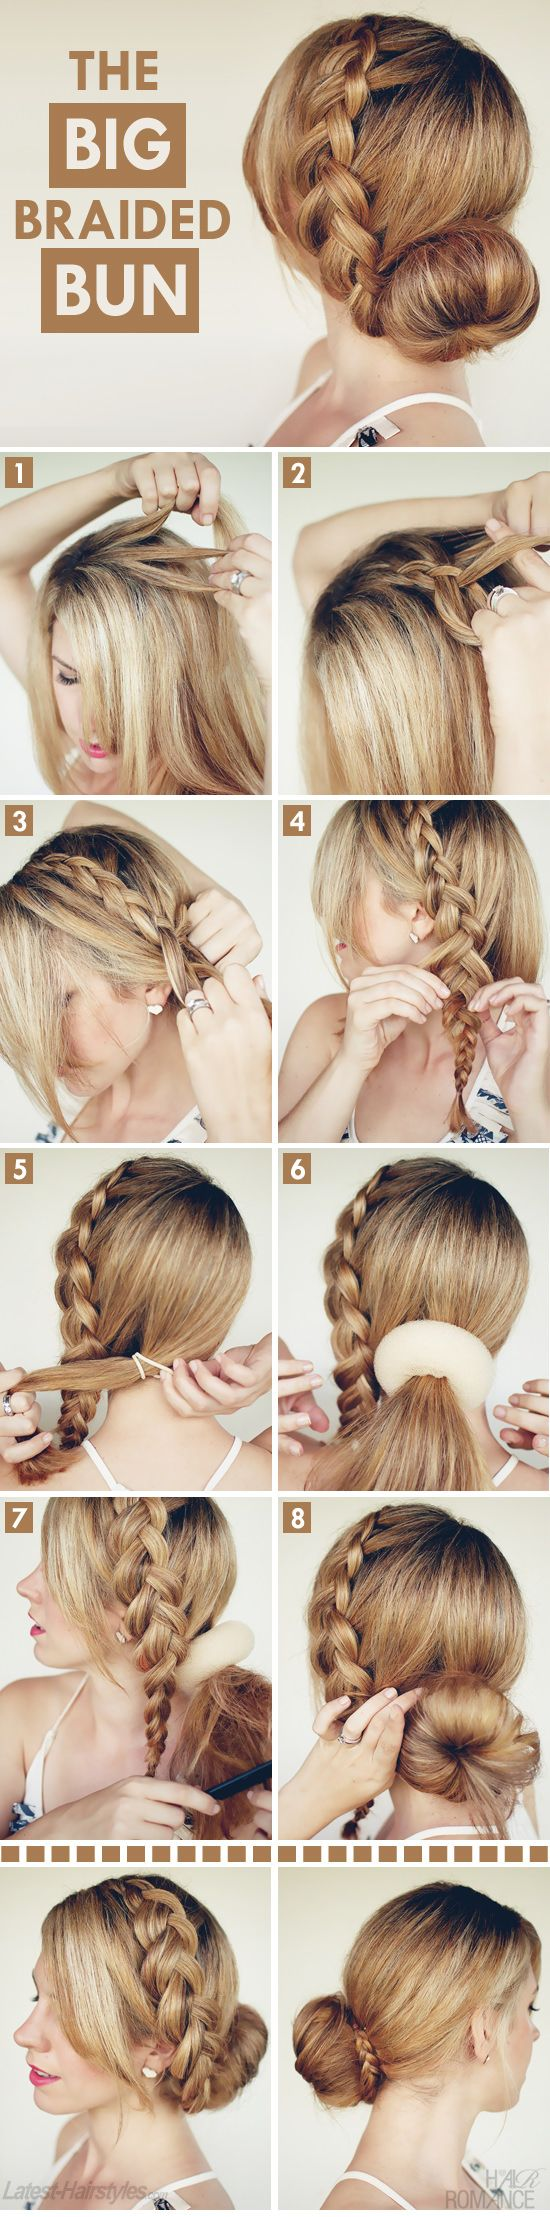 Best frisuren images on pinterest cute hairstyles make up